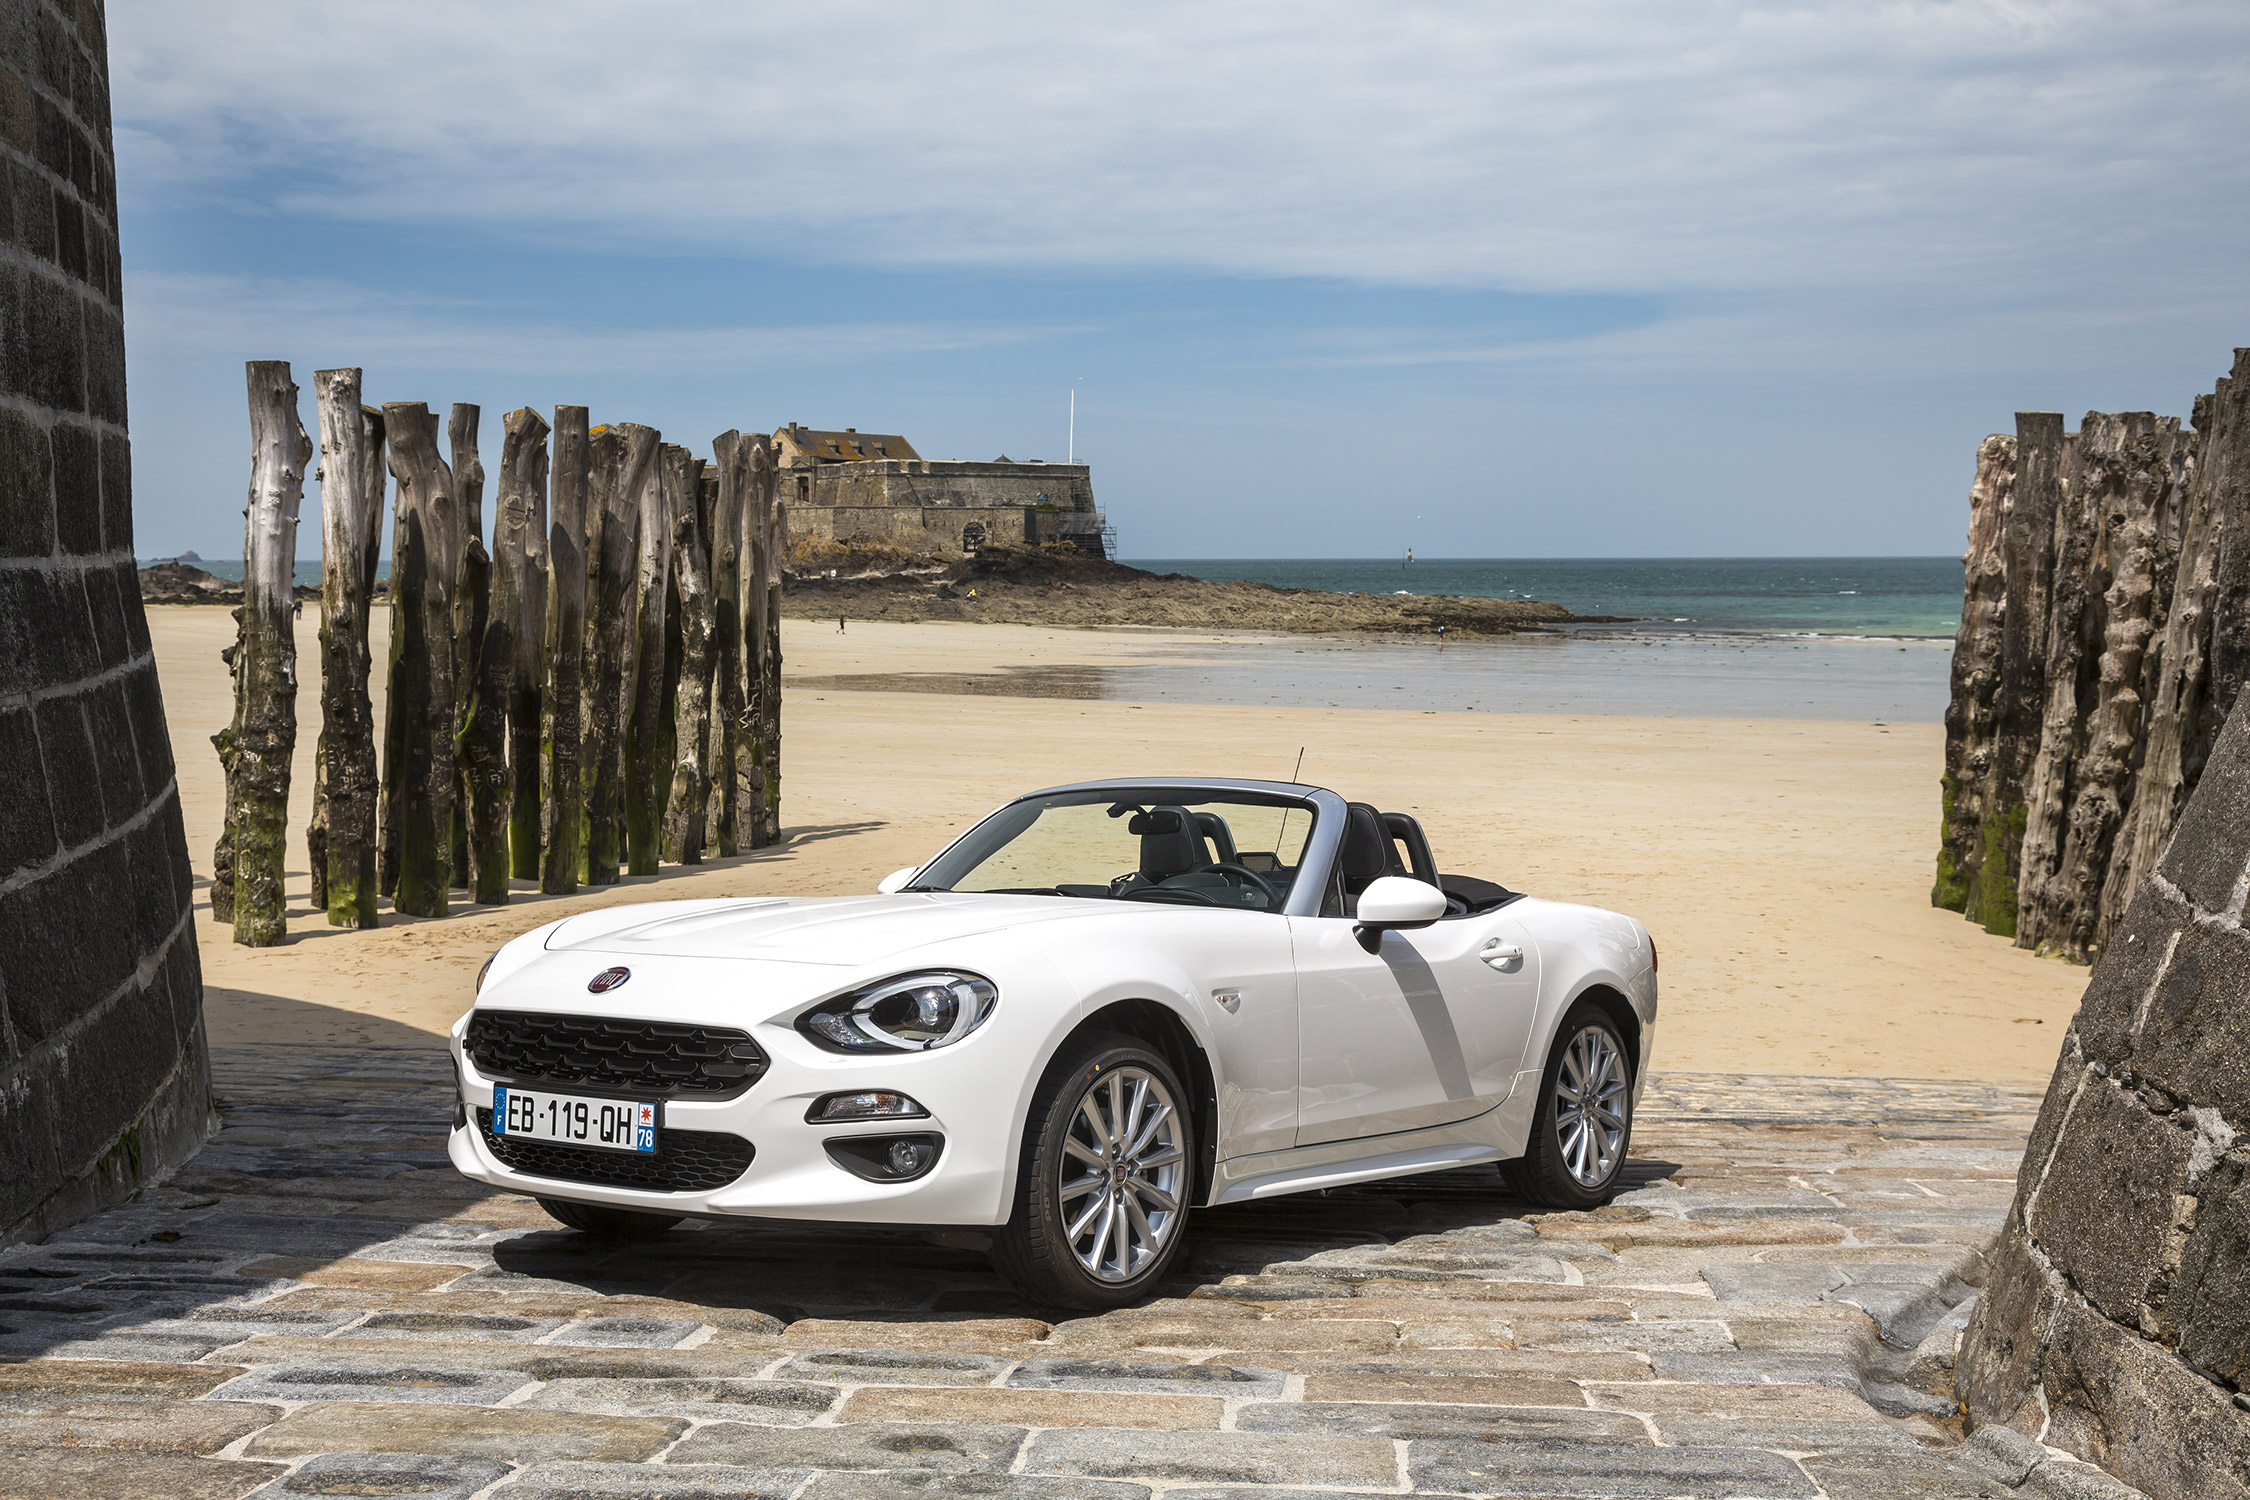 essai fiat 124 spider lusso plus motorlegend. Black Bedroom Furniture Sets. Home Design Ideas